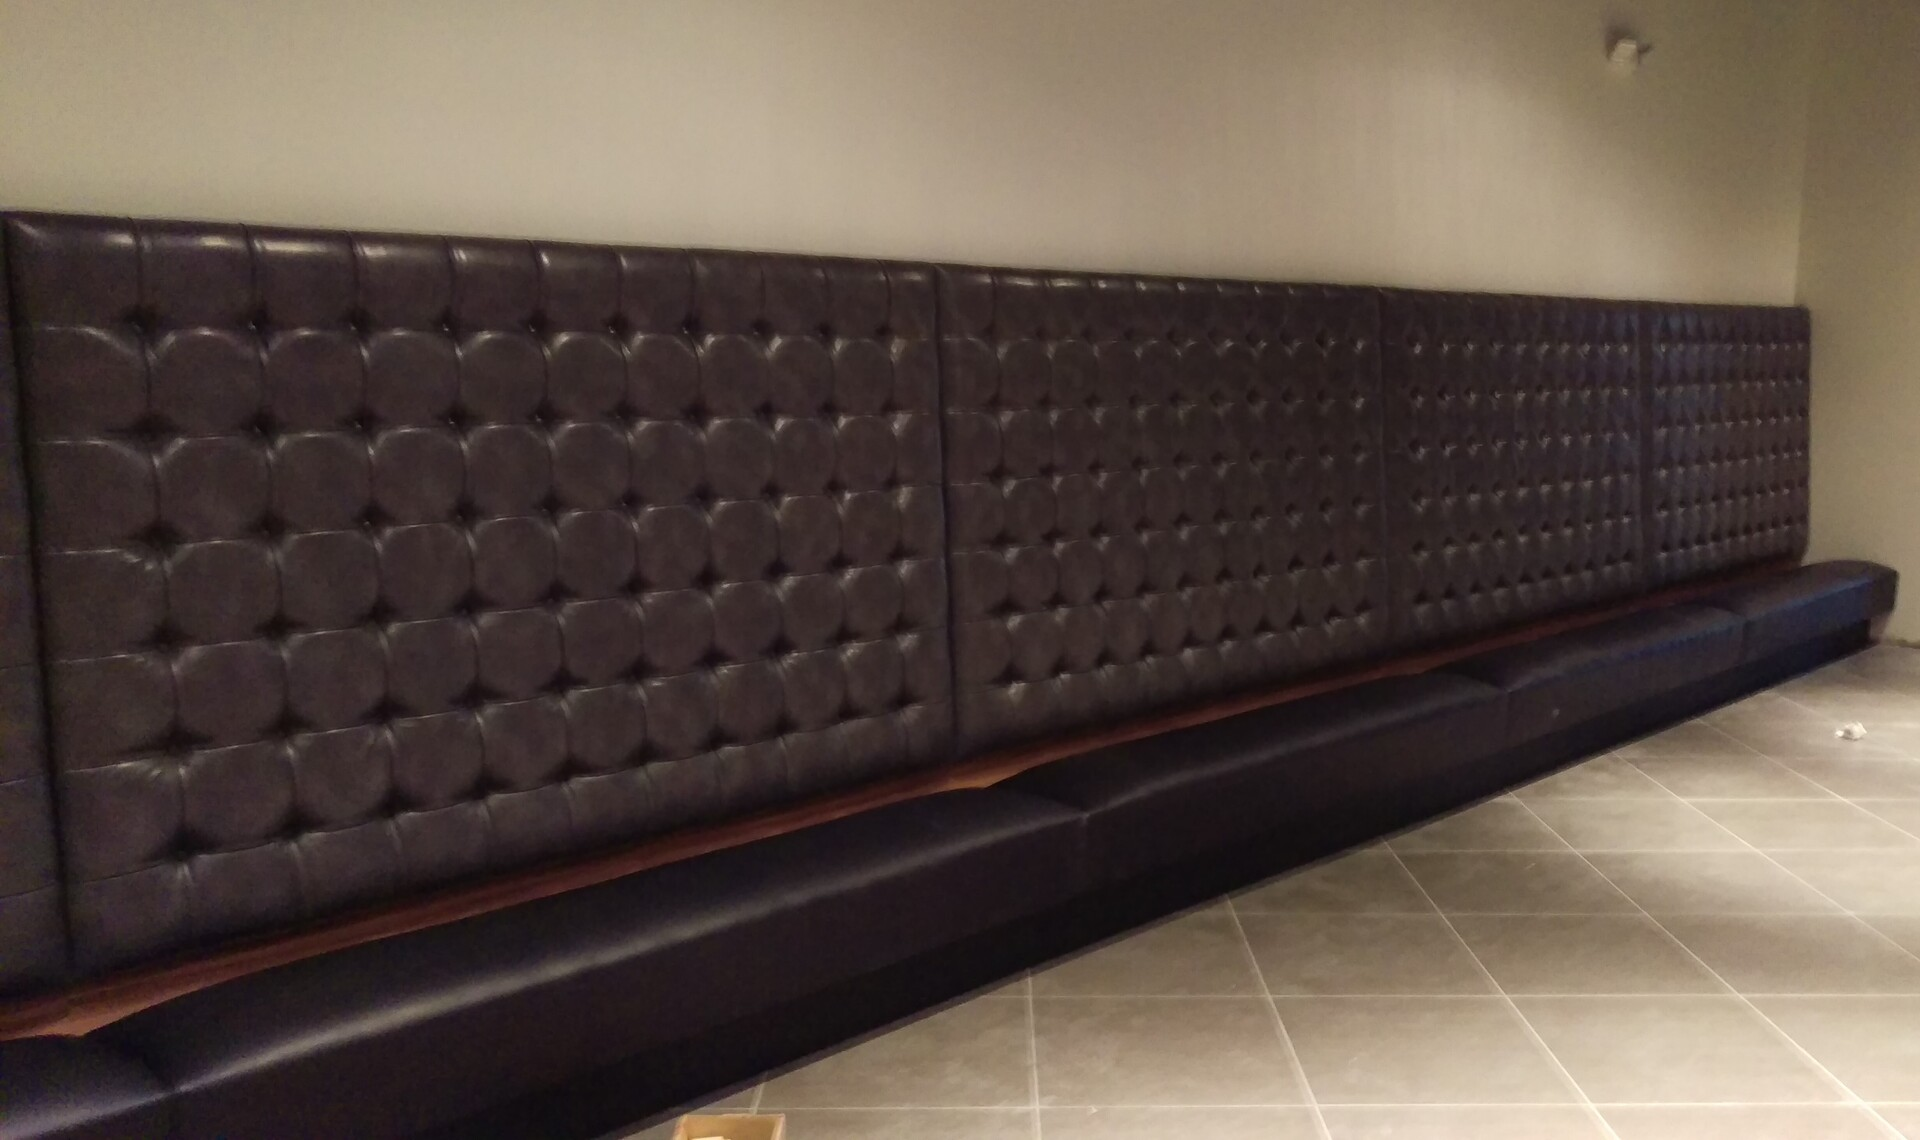 Contract Industries created this custom booth seating with a high, tufted back.